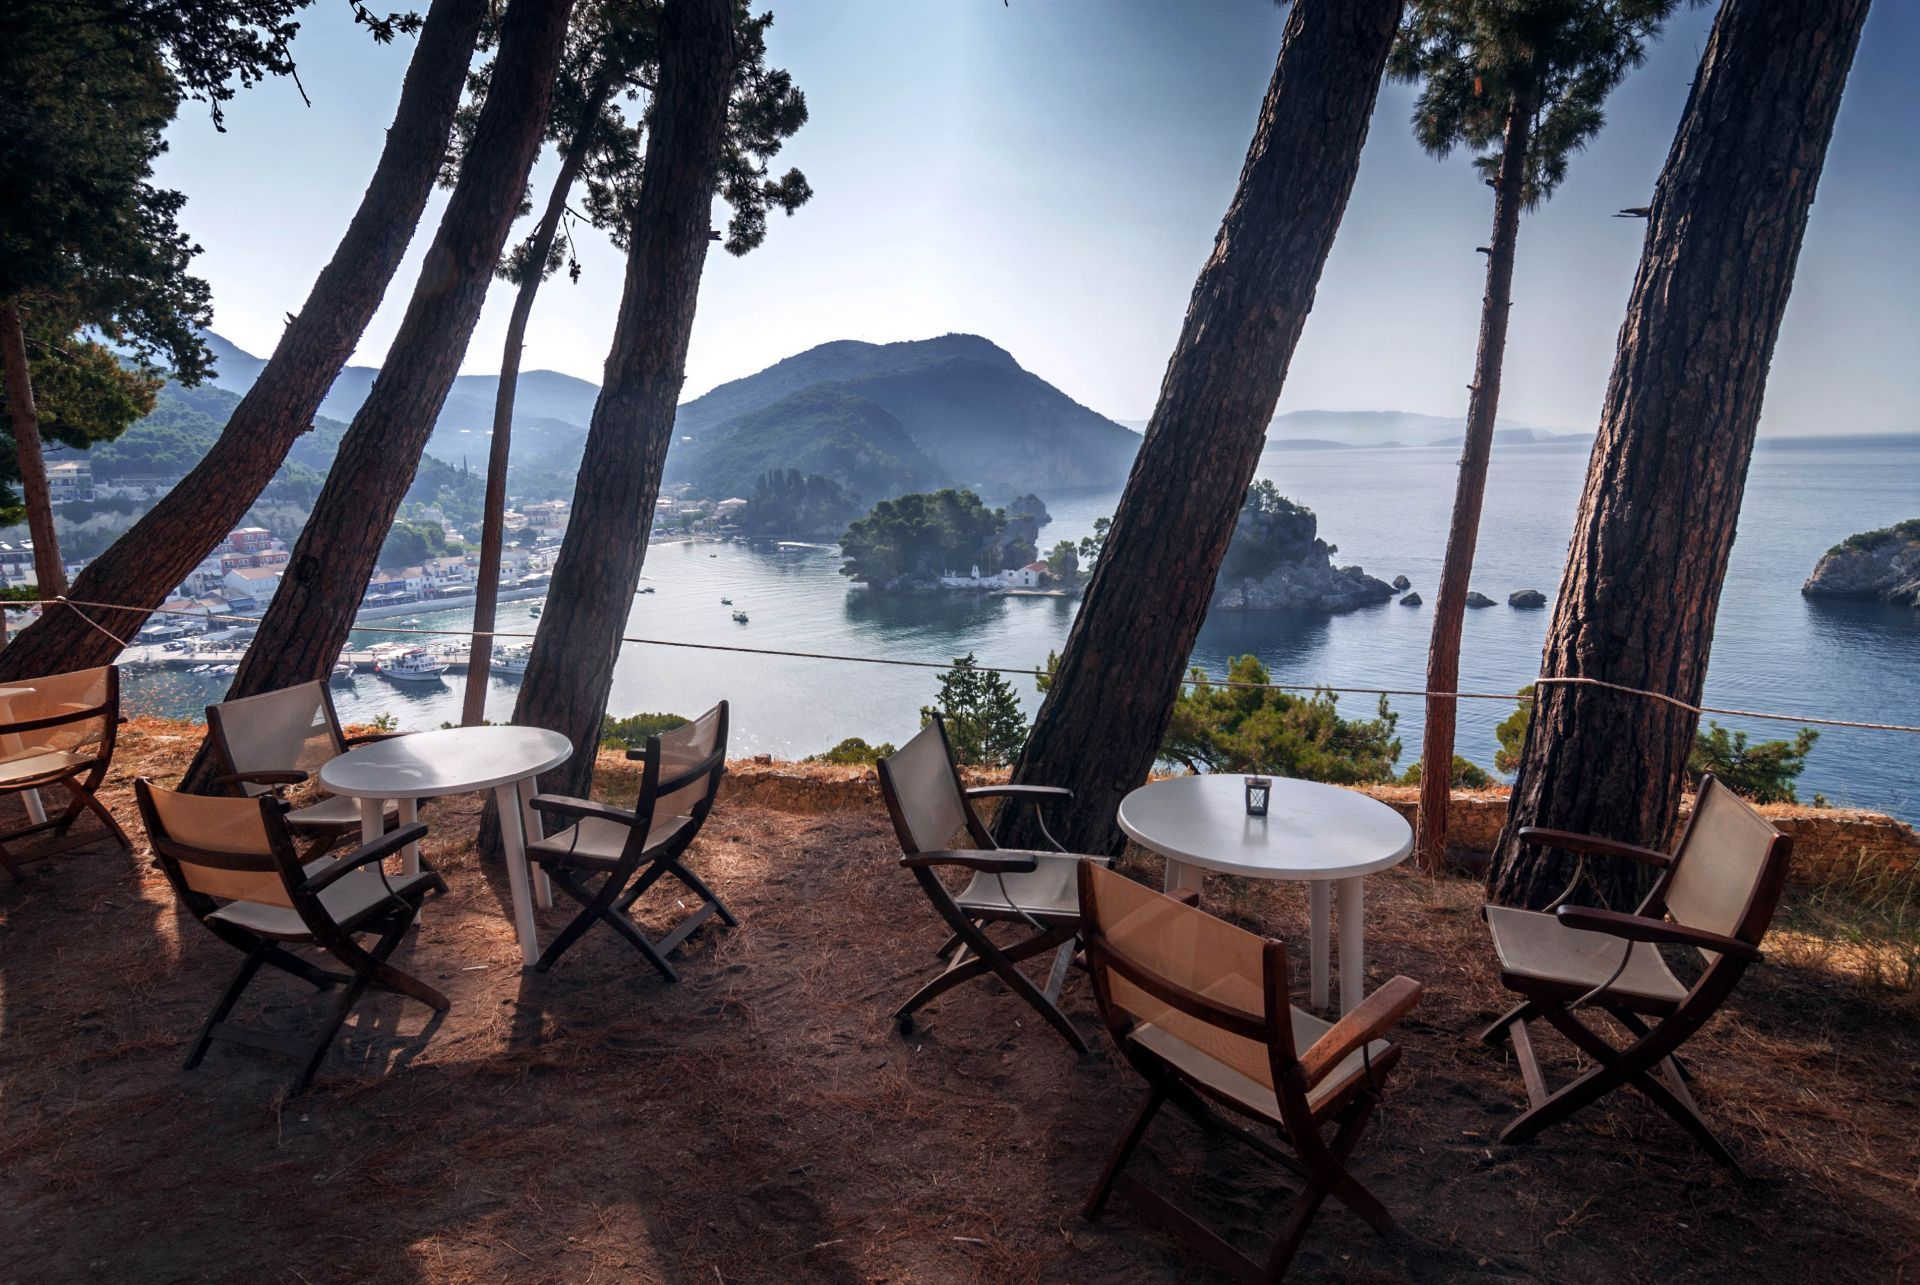 Places to eat and drink in Parga